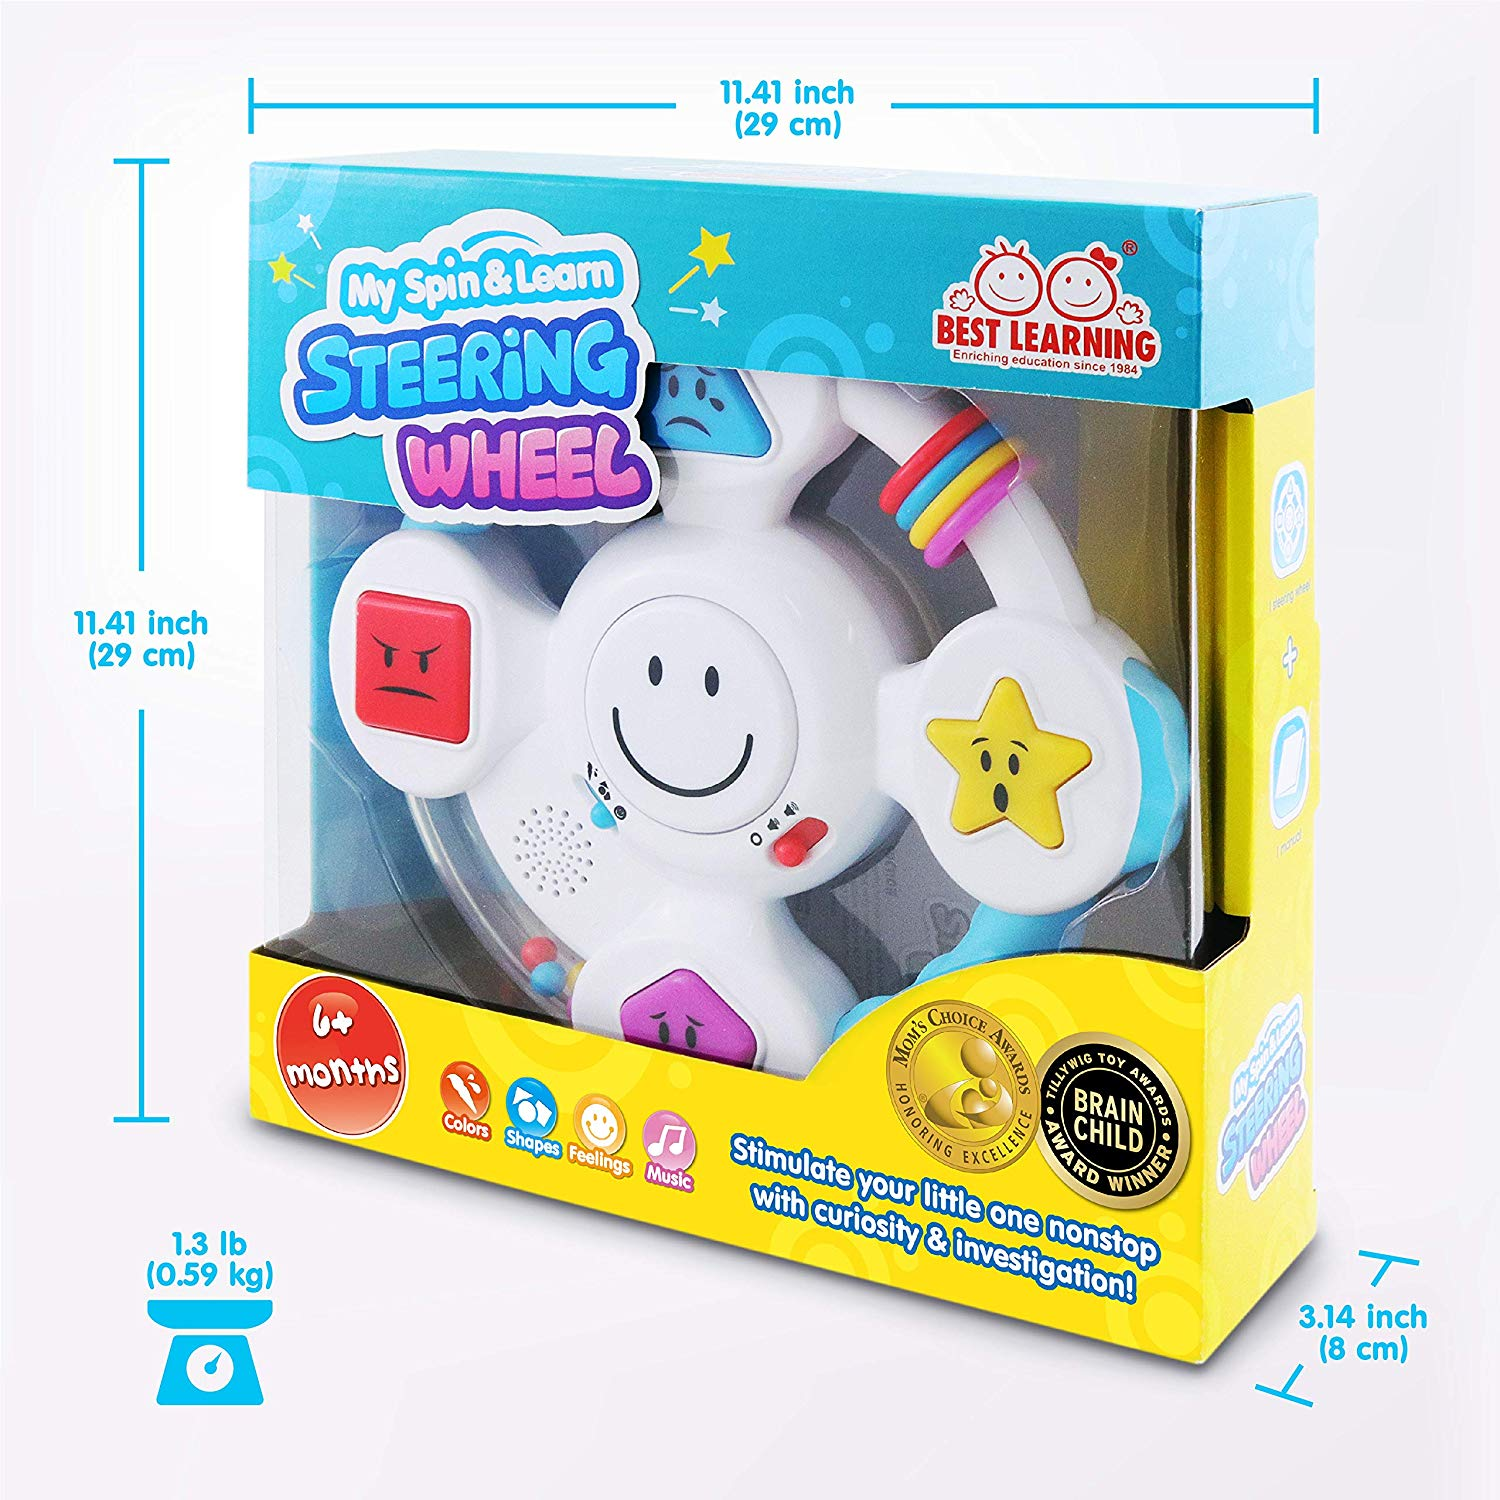 Best Learning My Spin Learn Steering Wheel Feelings Music Game Ideal Baby Toy Gifts Shapes Toddlers Babies Learn Colors Interactive Educational Toys For 6 To 36 Months Old Infants Music